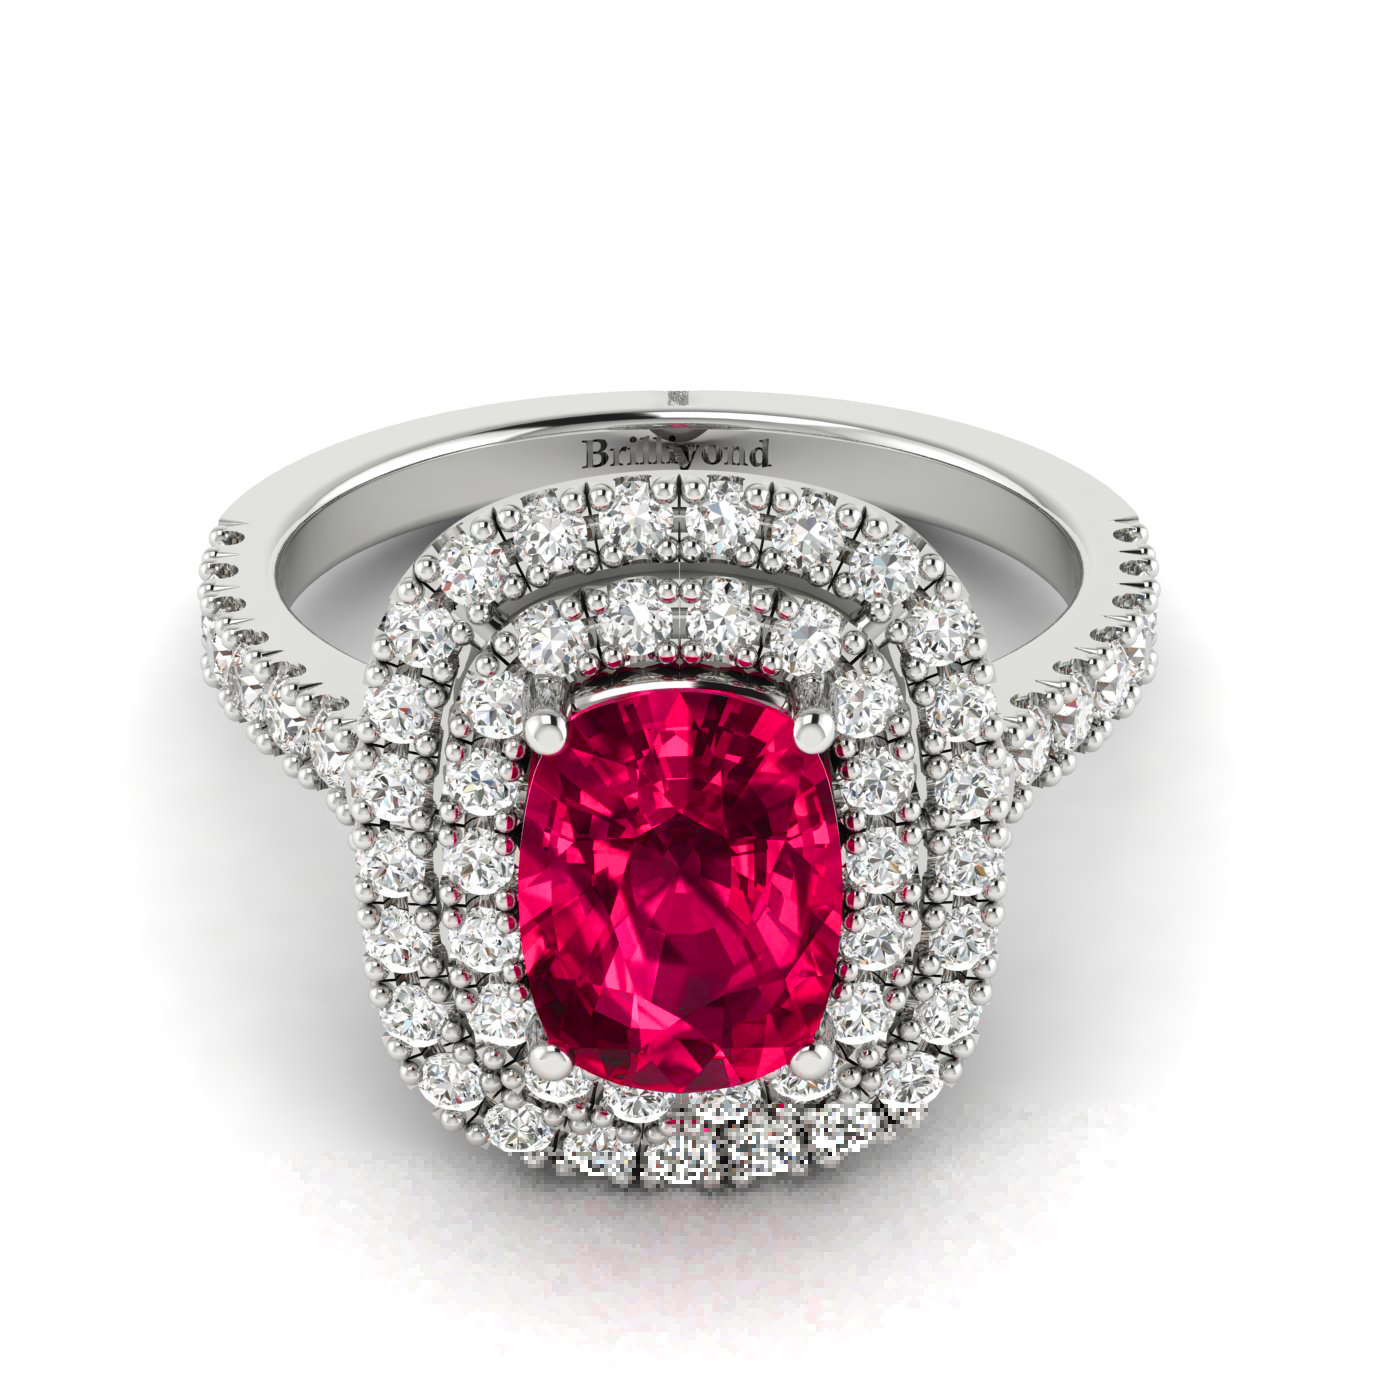 Cushion Cut Ruby with Diamond Accents on 18k White Gold